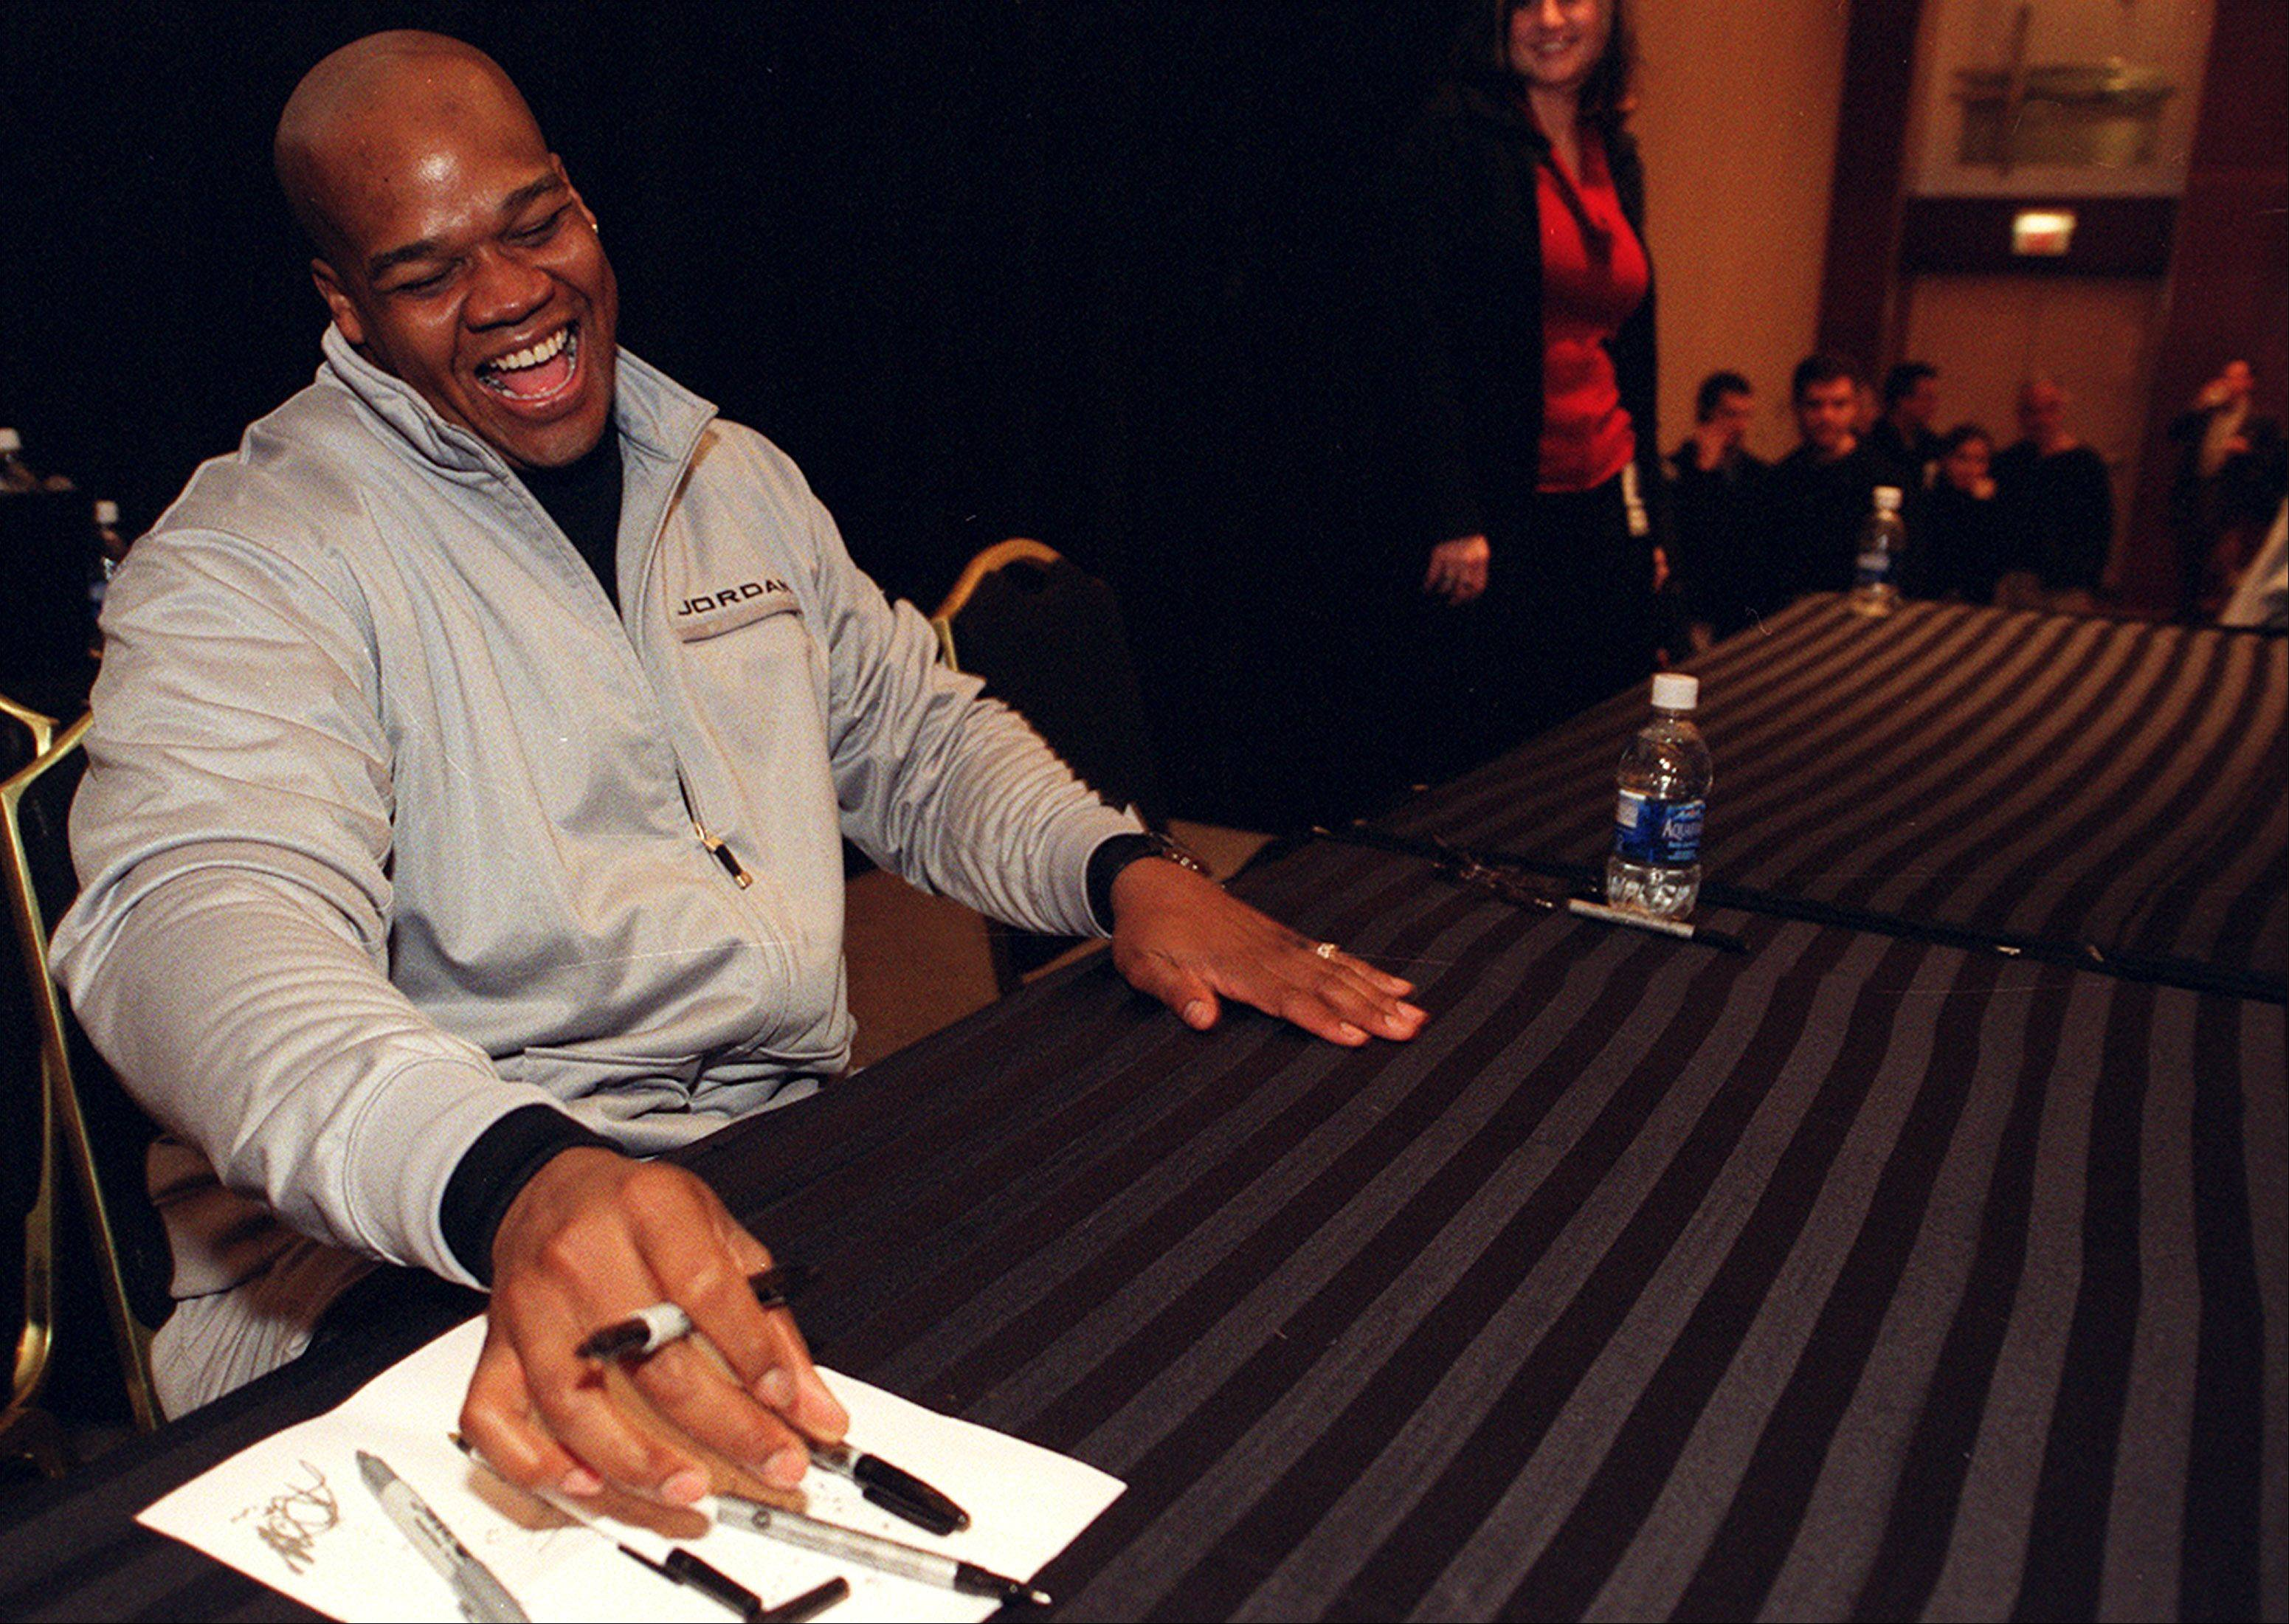 Frank Thomas of the Chicago White Sox laughs with a fan as he signs 800 autographs at SoxFest in Chicago.